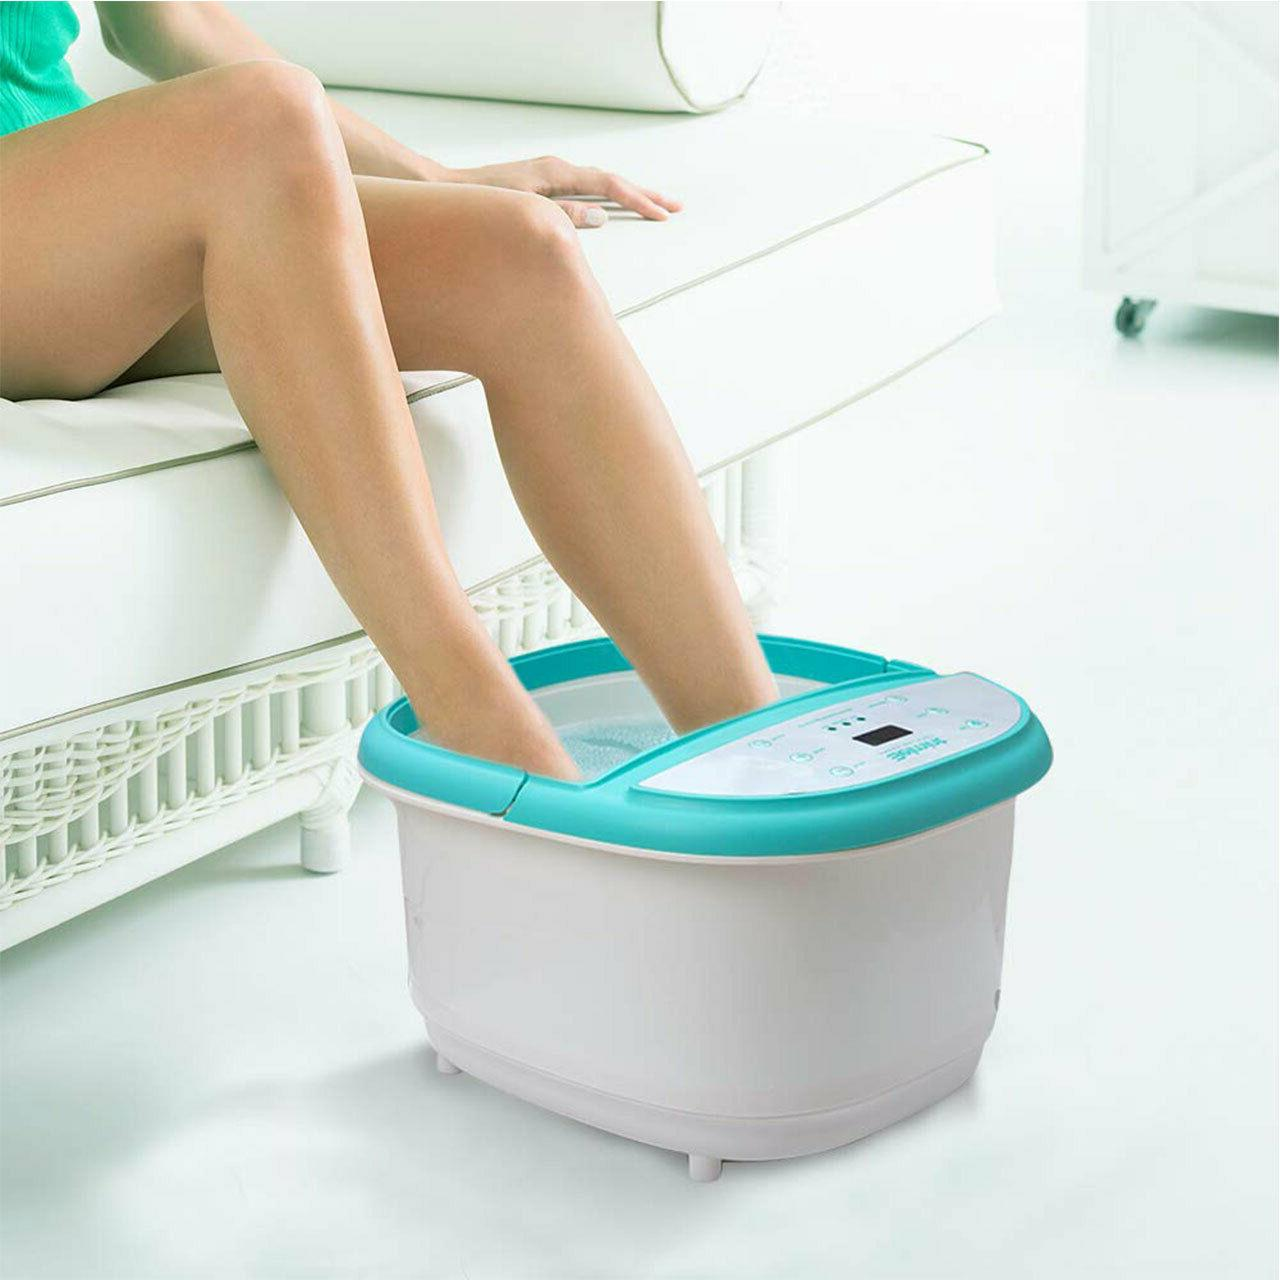 Foot Massager with Heat Soaking Tub Features 6 Pressure